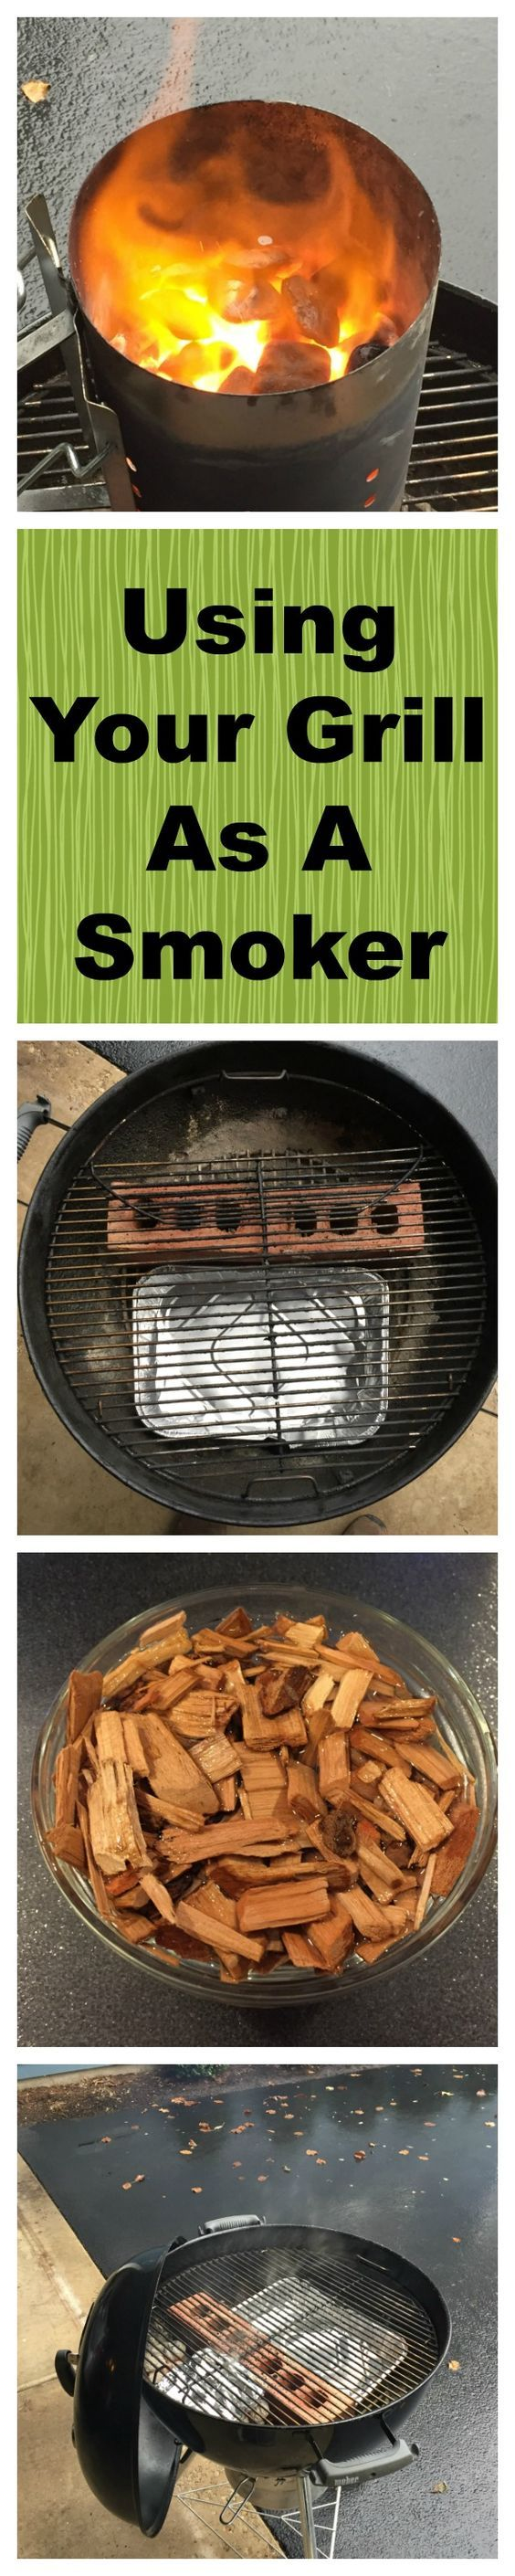 best 25 weber charcoal grill ideas on pinterest charcoal bbq